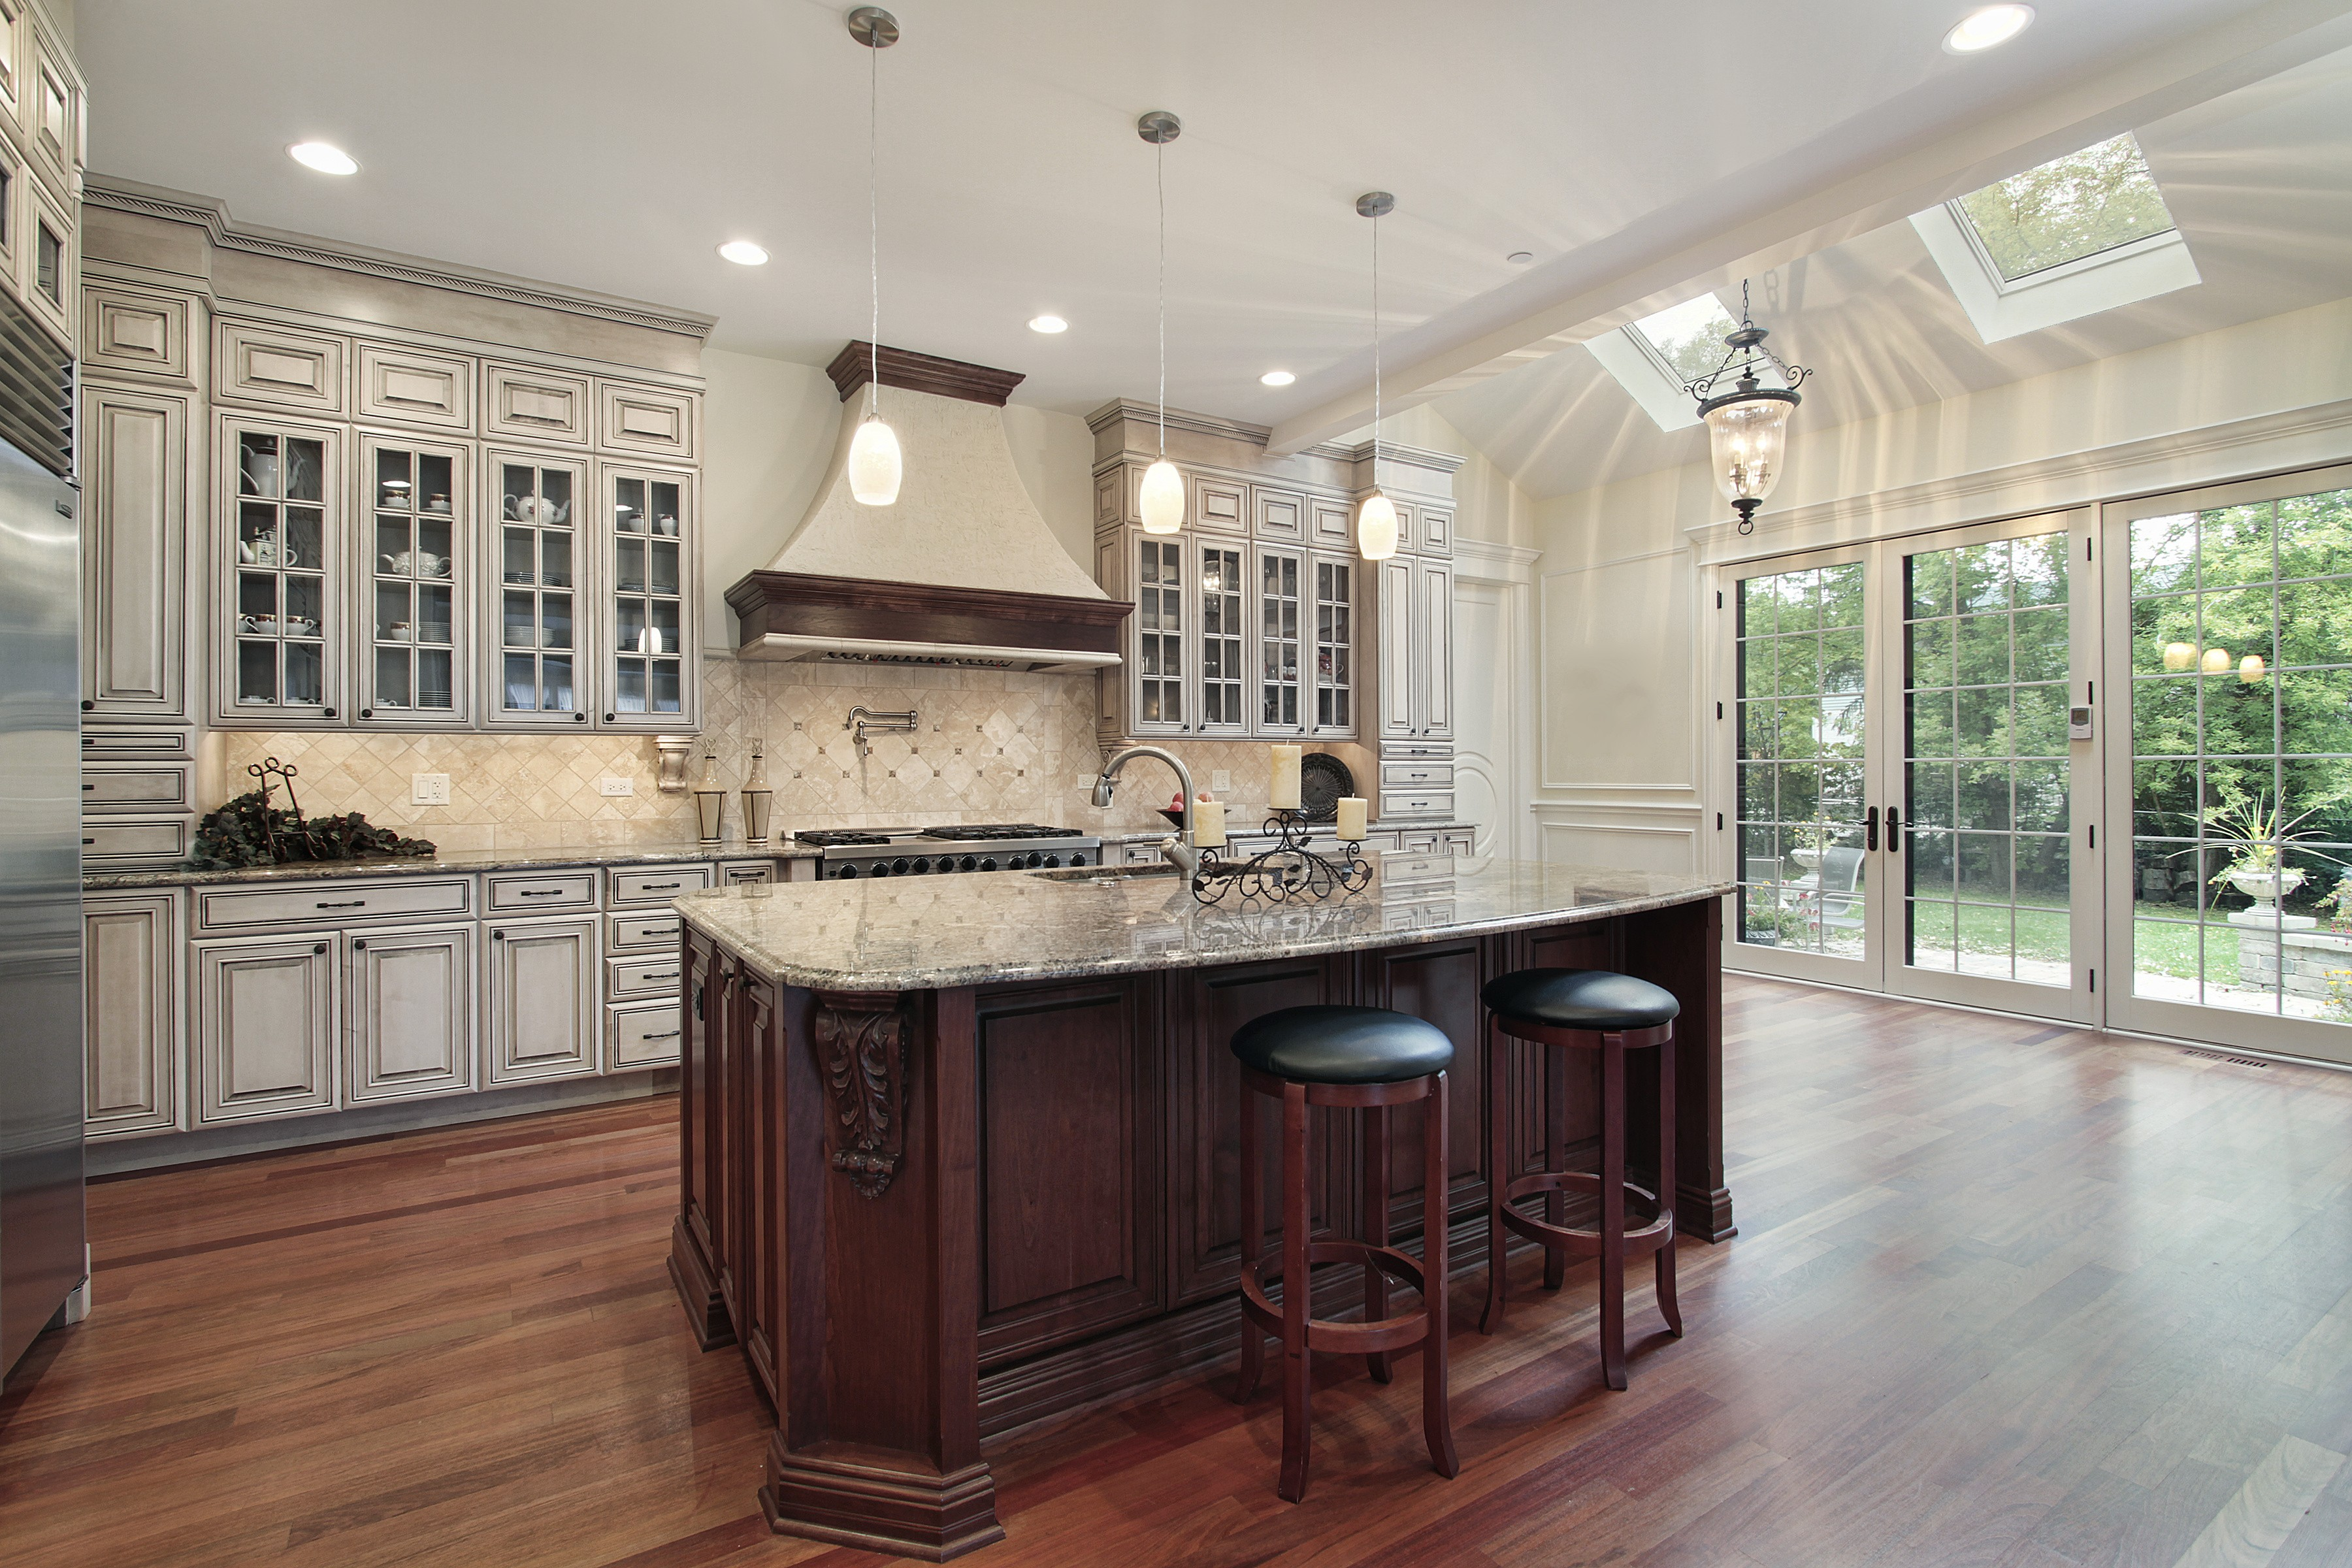 Payless Kitchen Cabinets